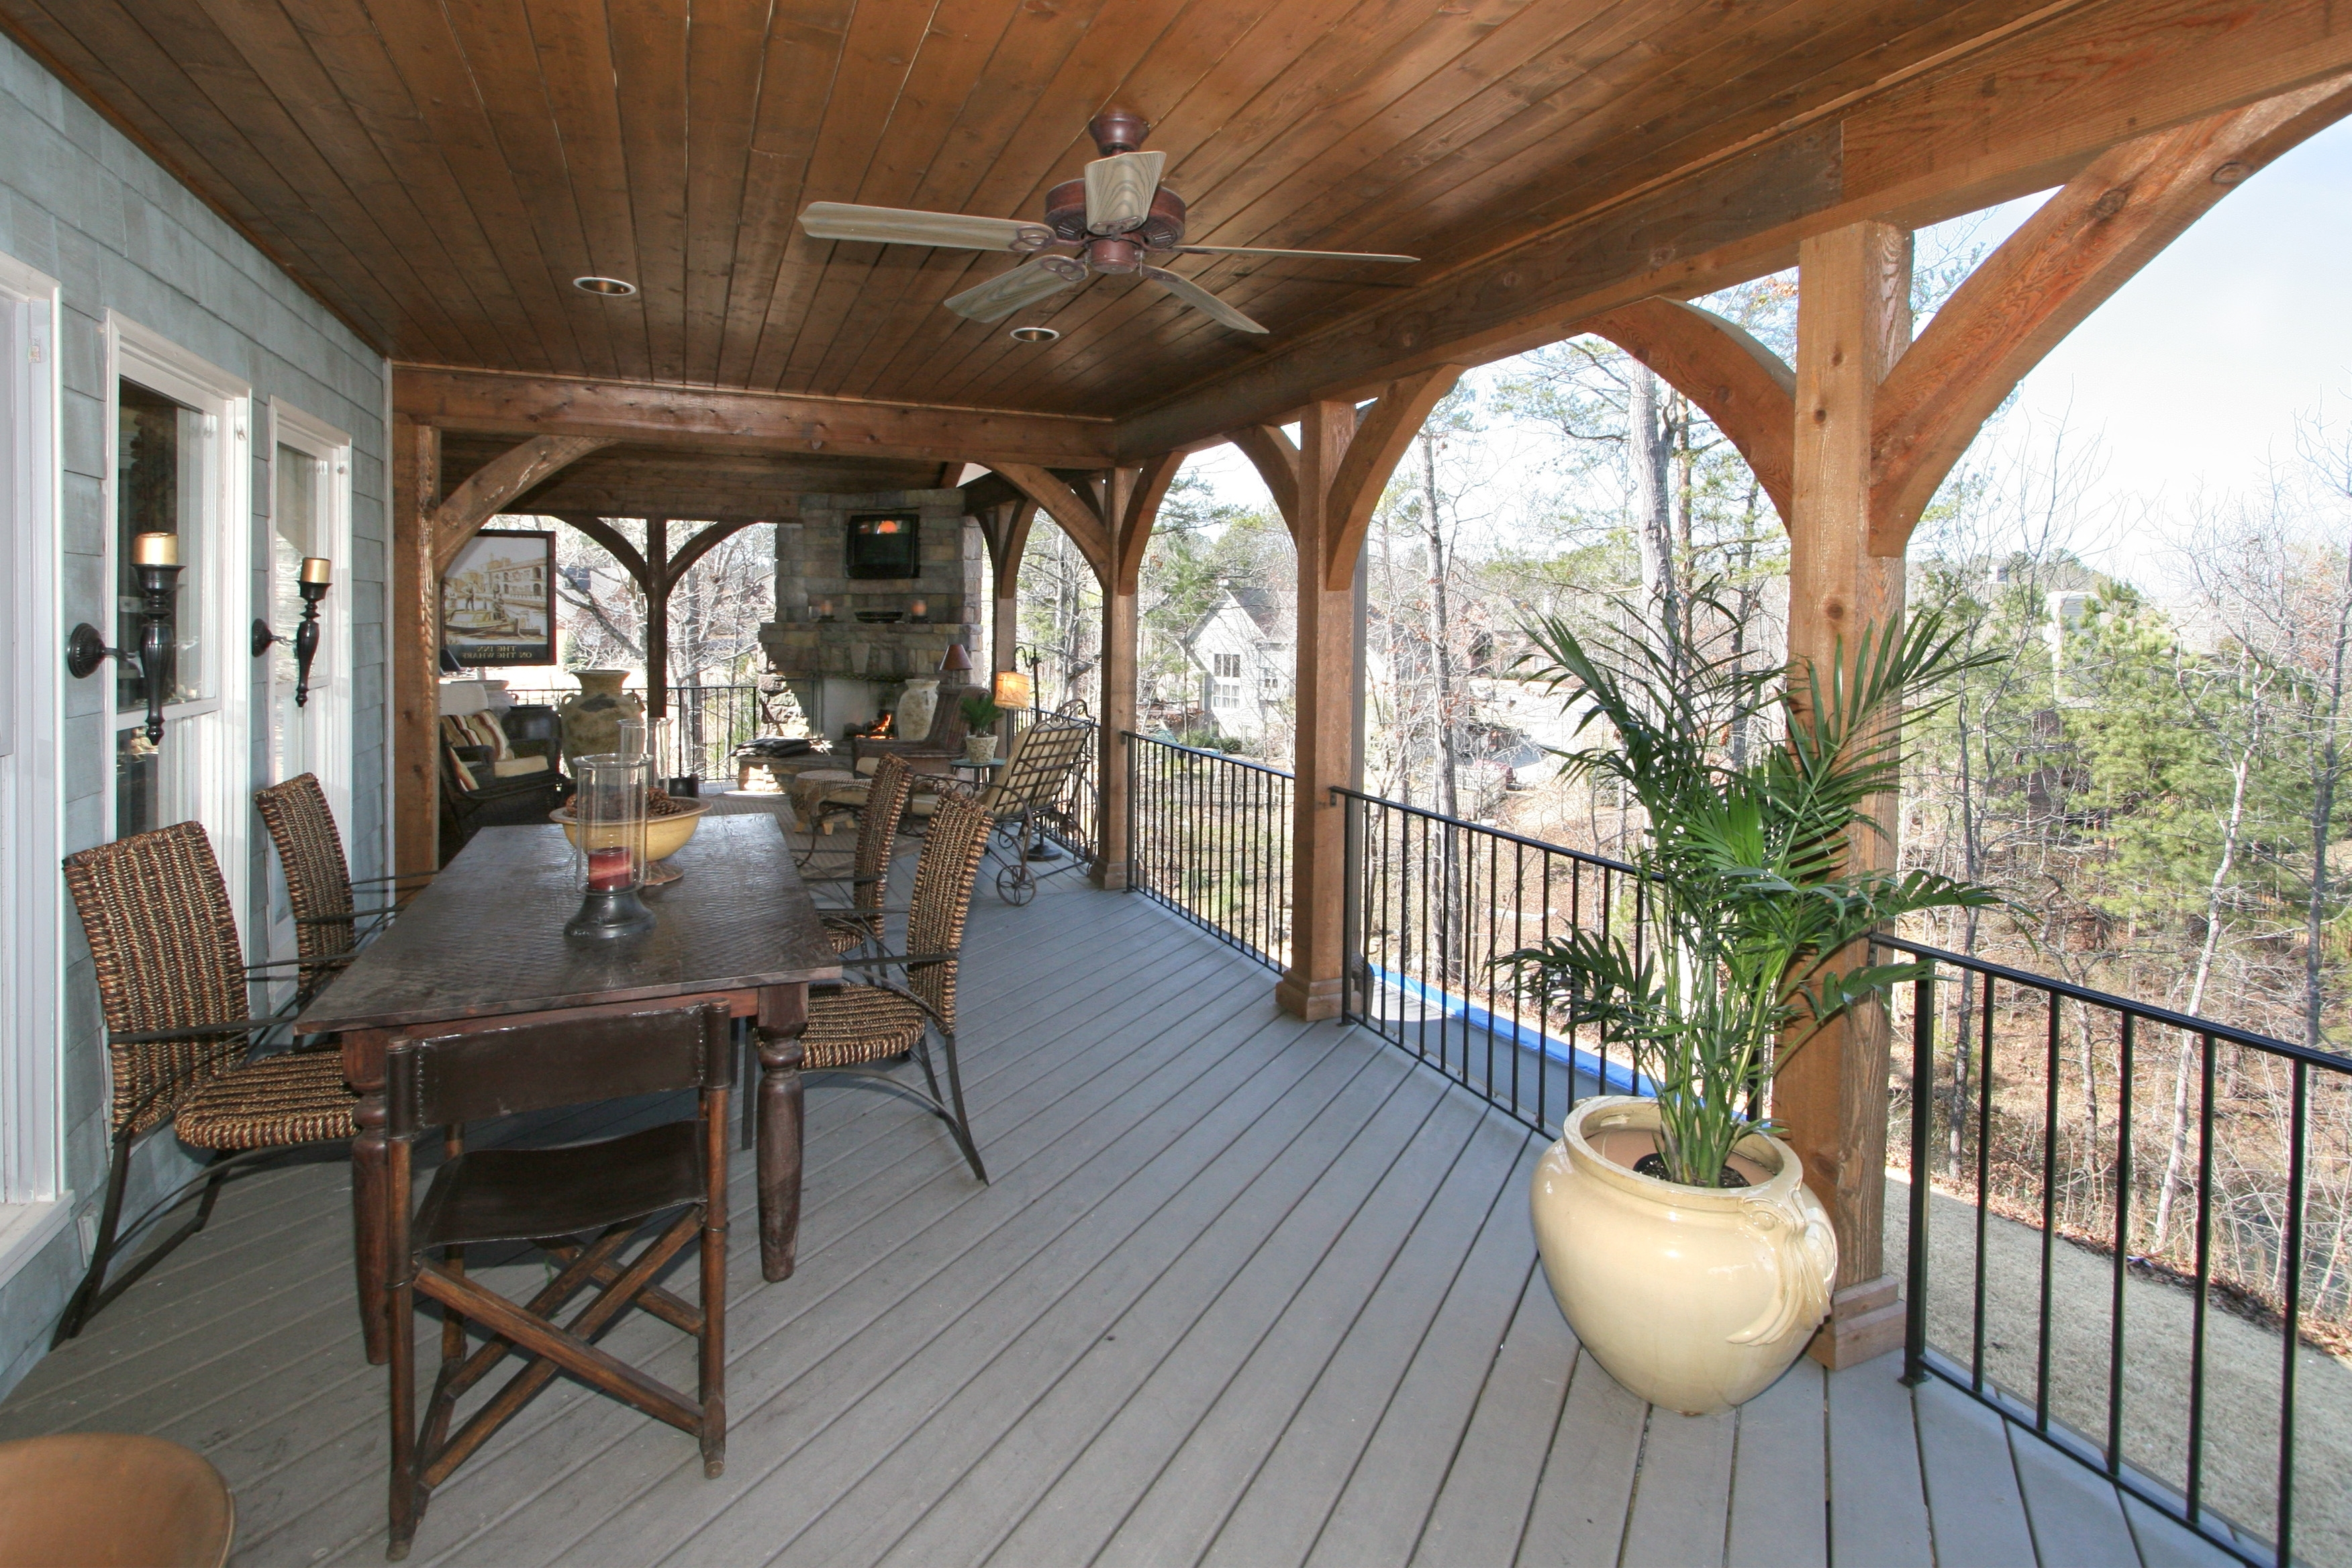 St. Louis With Regard To Well Known Outdoor Ceiling Fans For Screened Porches (Gallery 15 of 20)